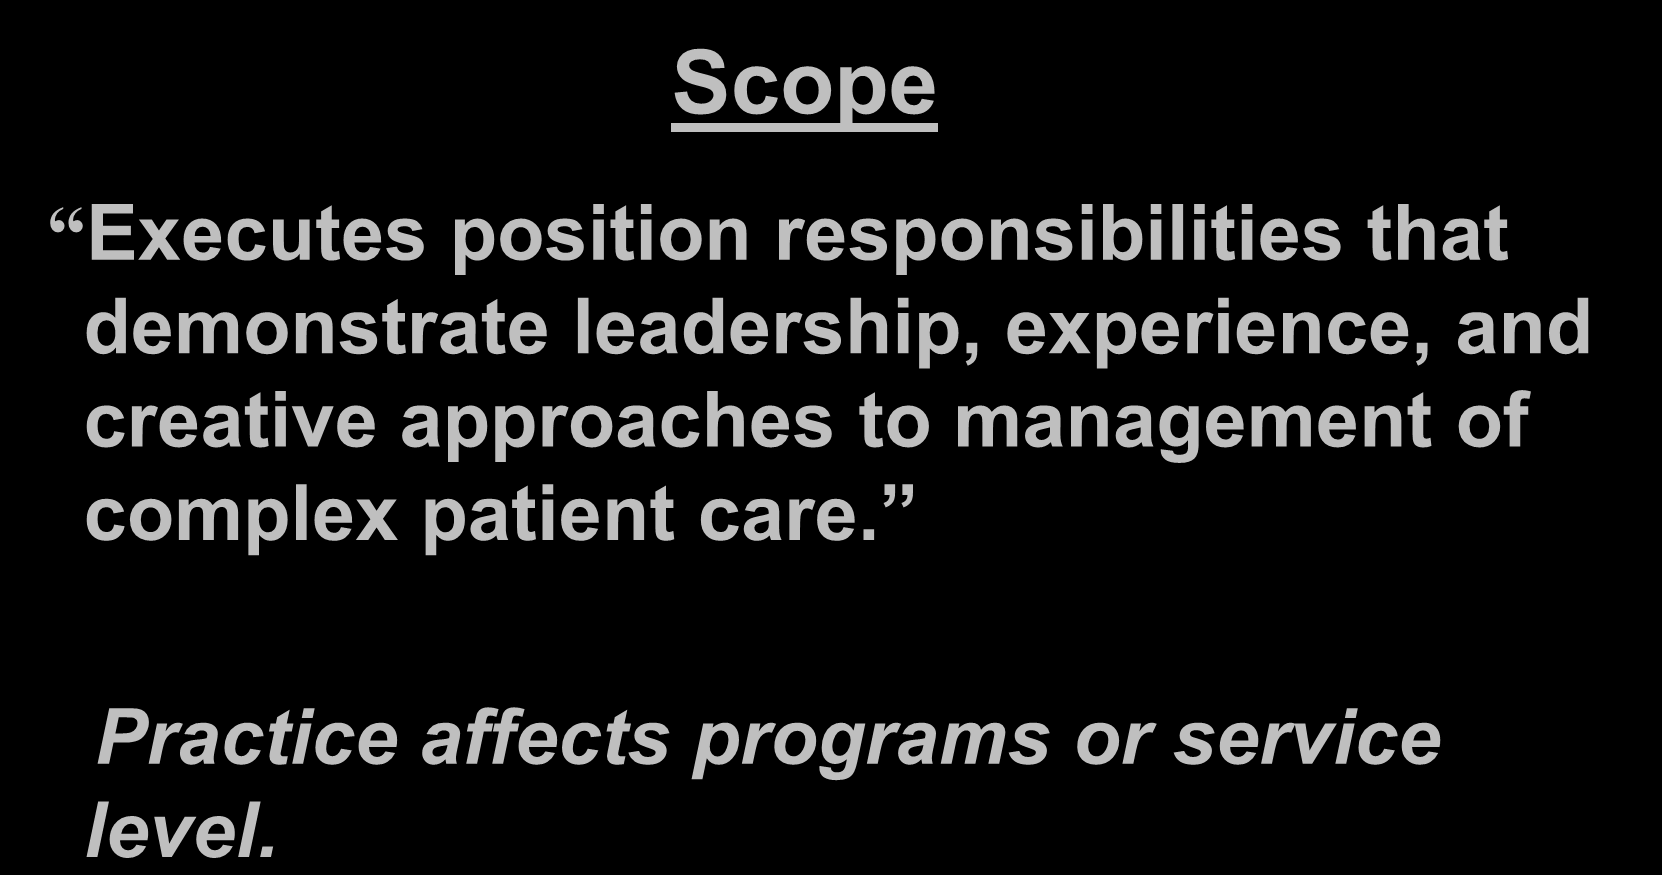 Nurse III Scope Executes position responsibilities that demonstrate leadership, experience, and